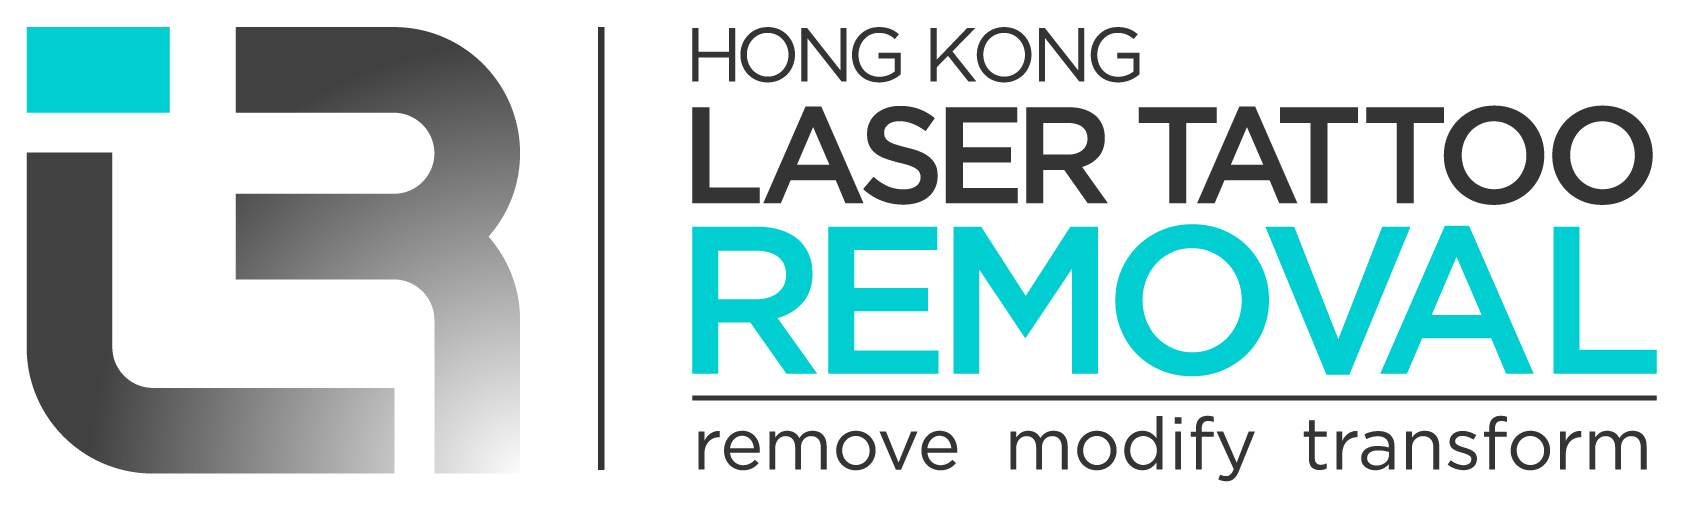 Home - Hong Kong Laser Tattoo Removal Clinic